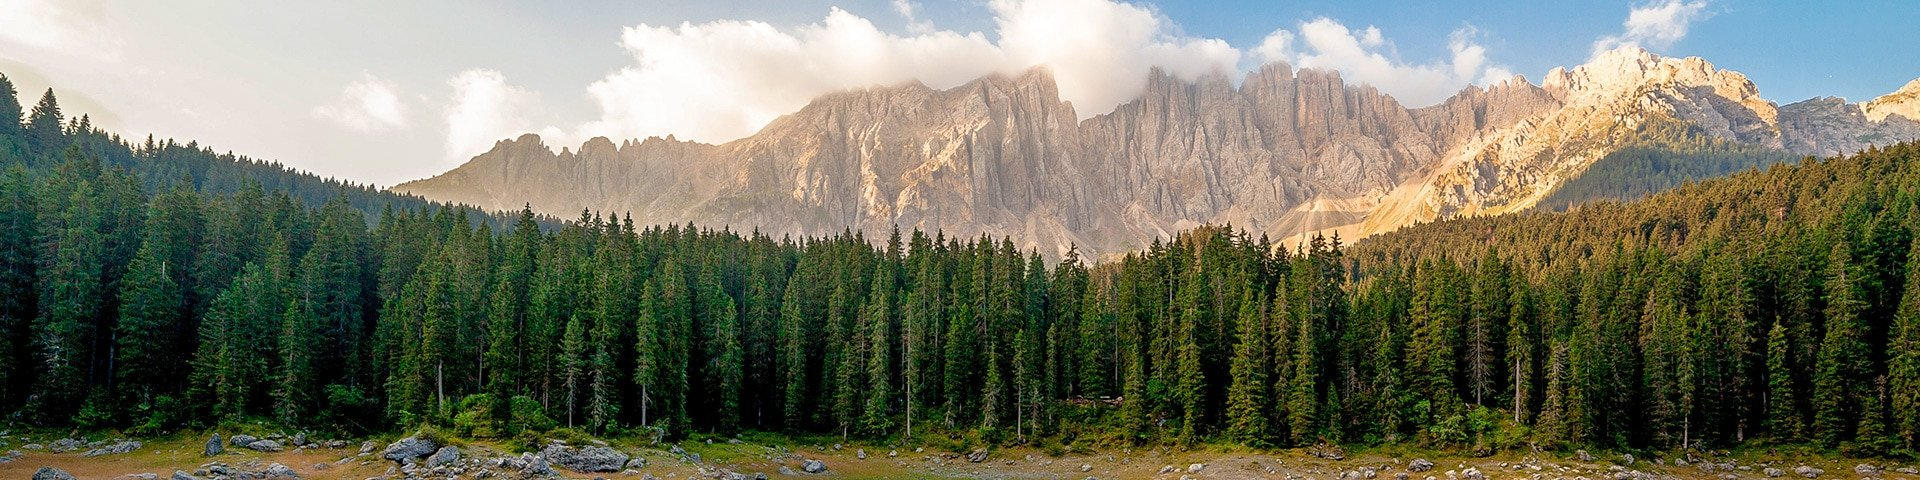 Panorama from the Carezza Lake Alpi di Sennes hike in Dolomites, Italy